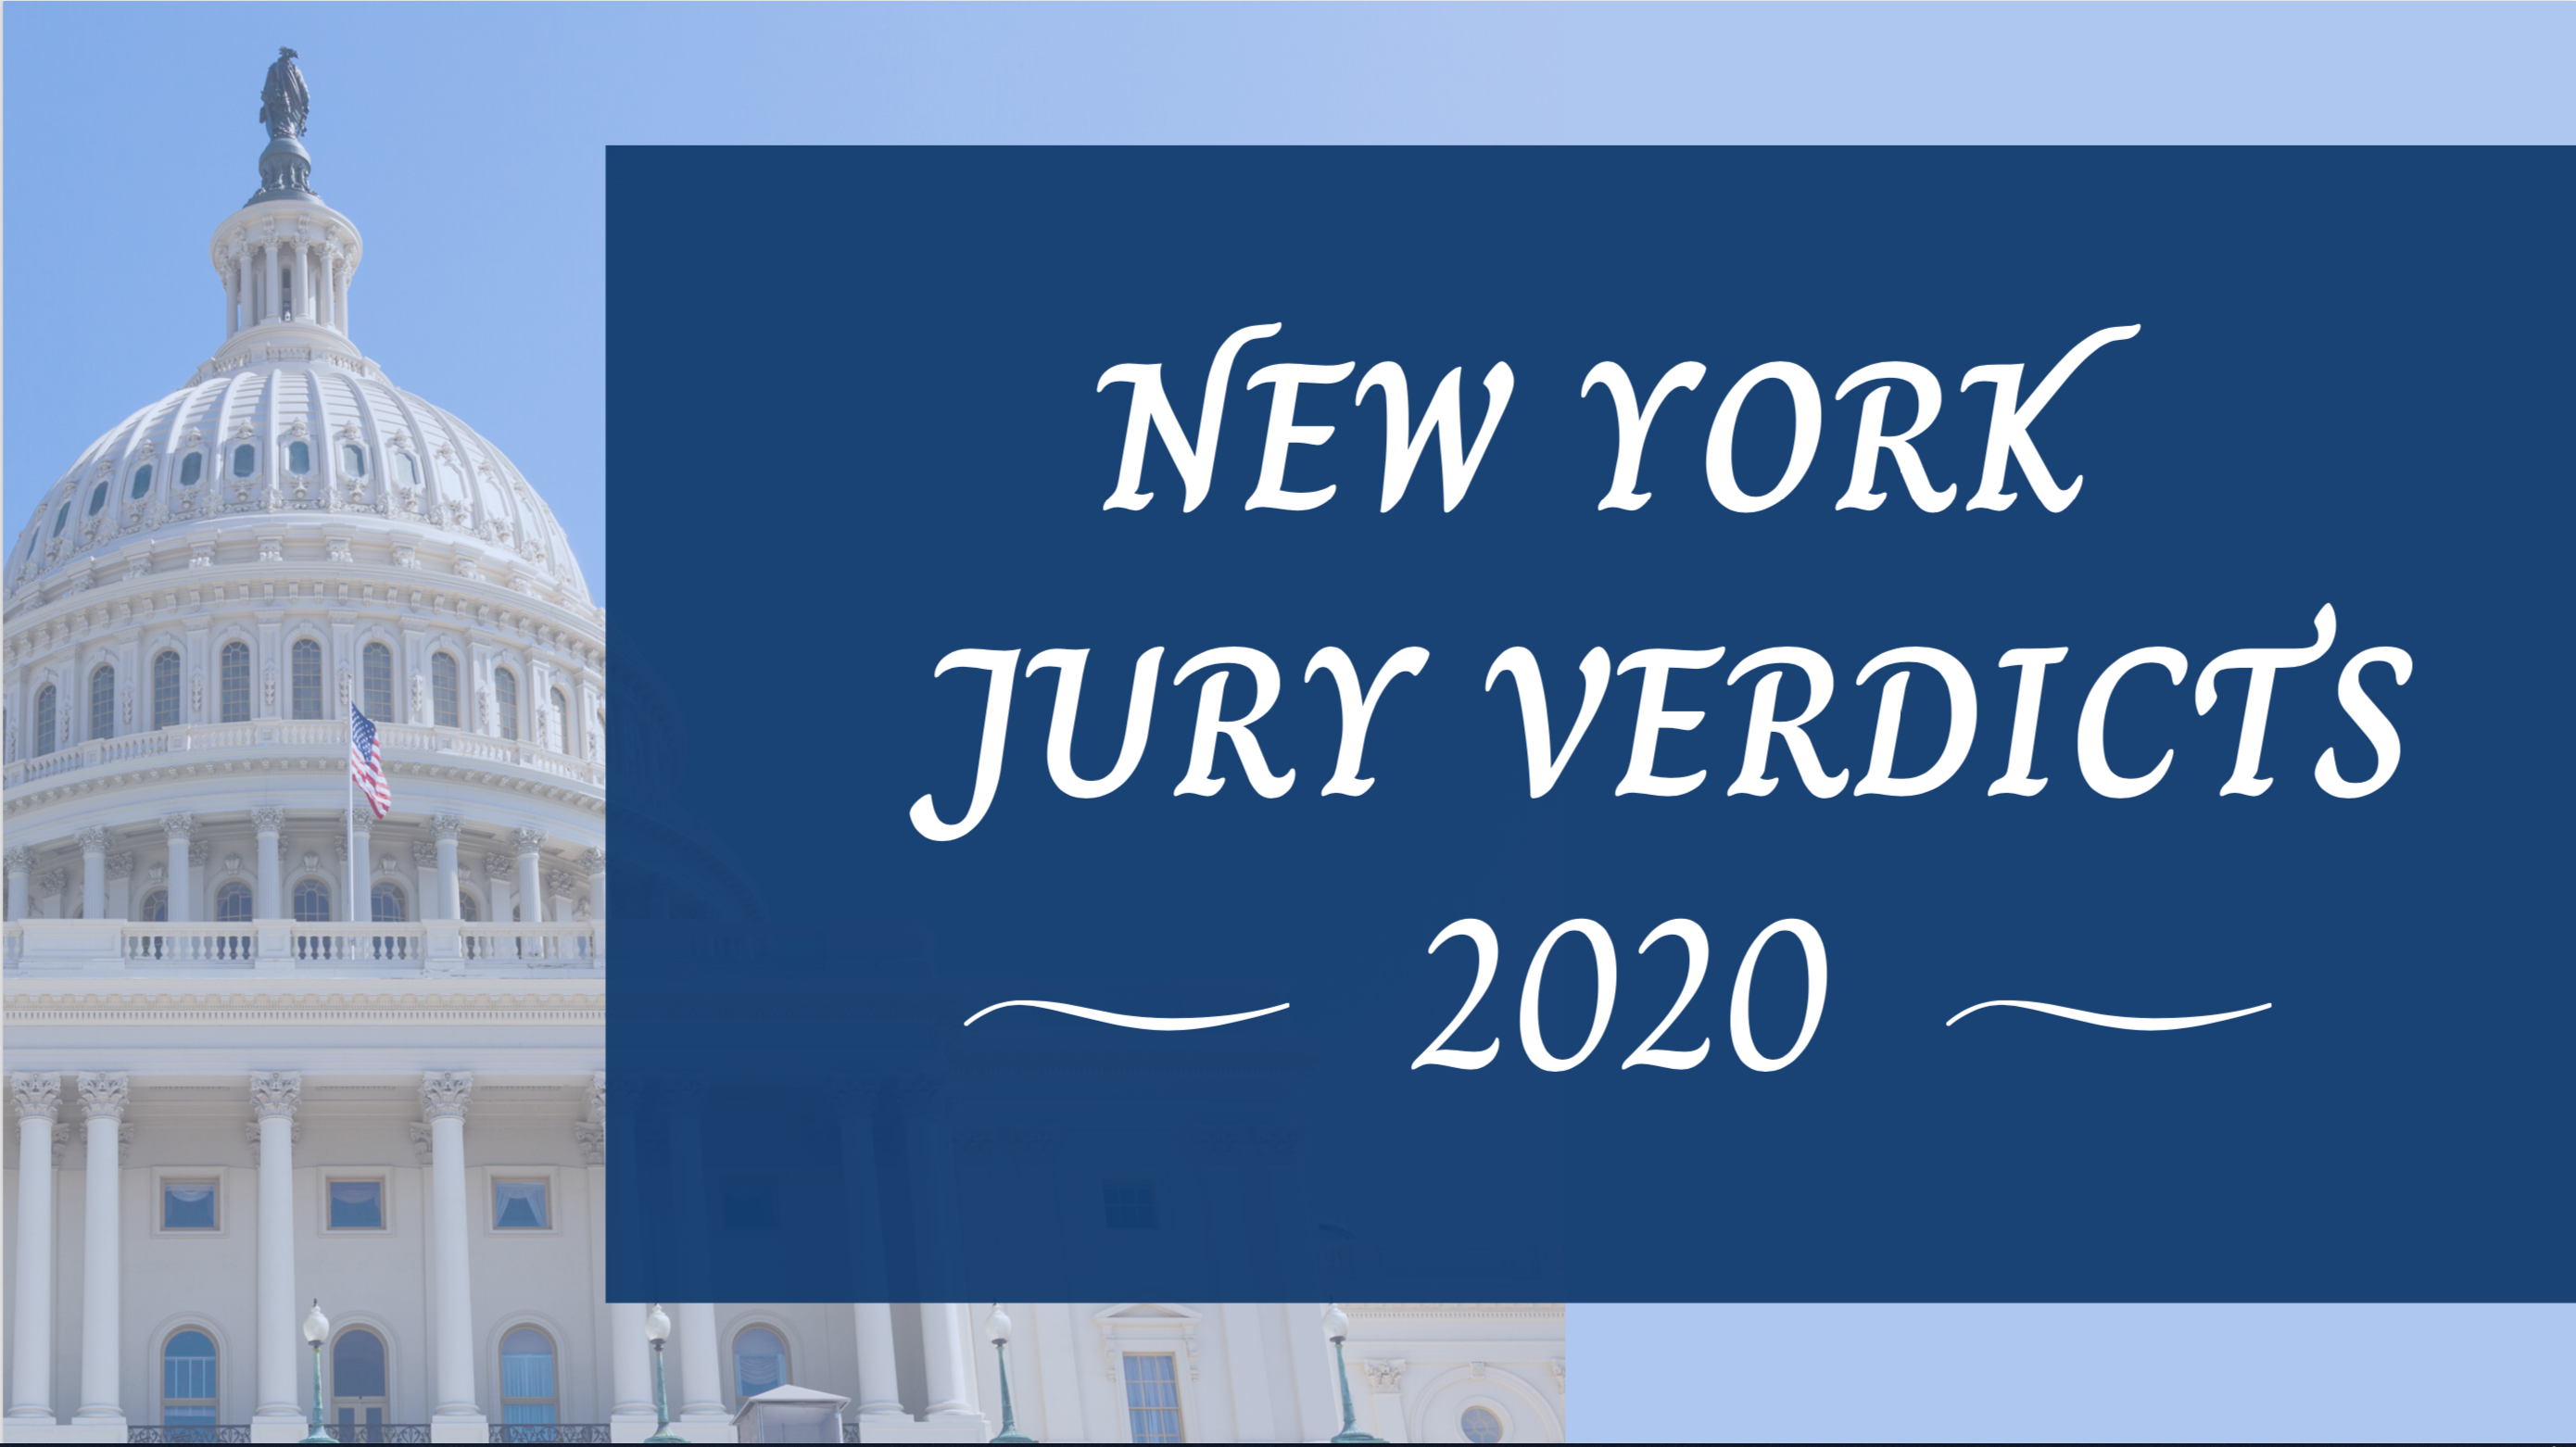 new york verdicts